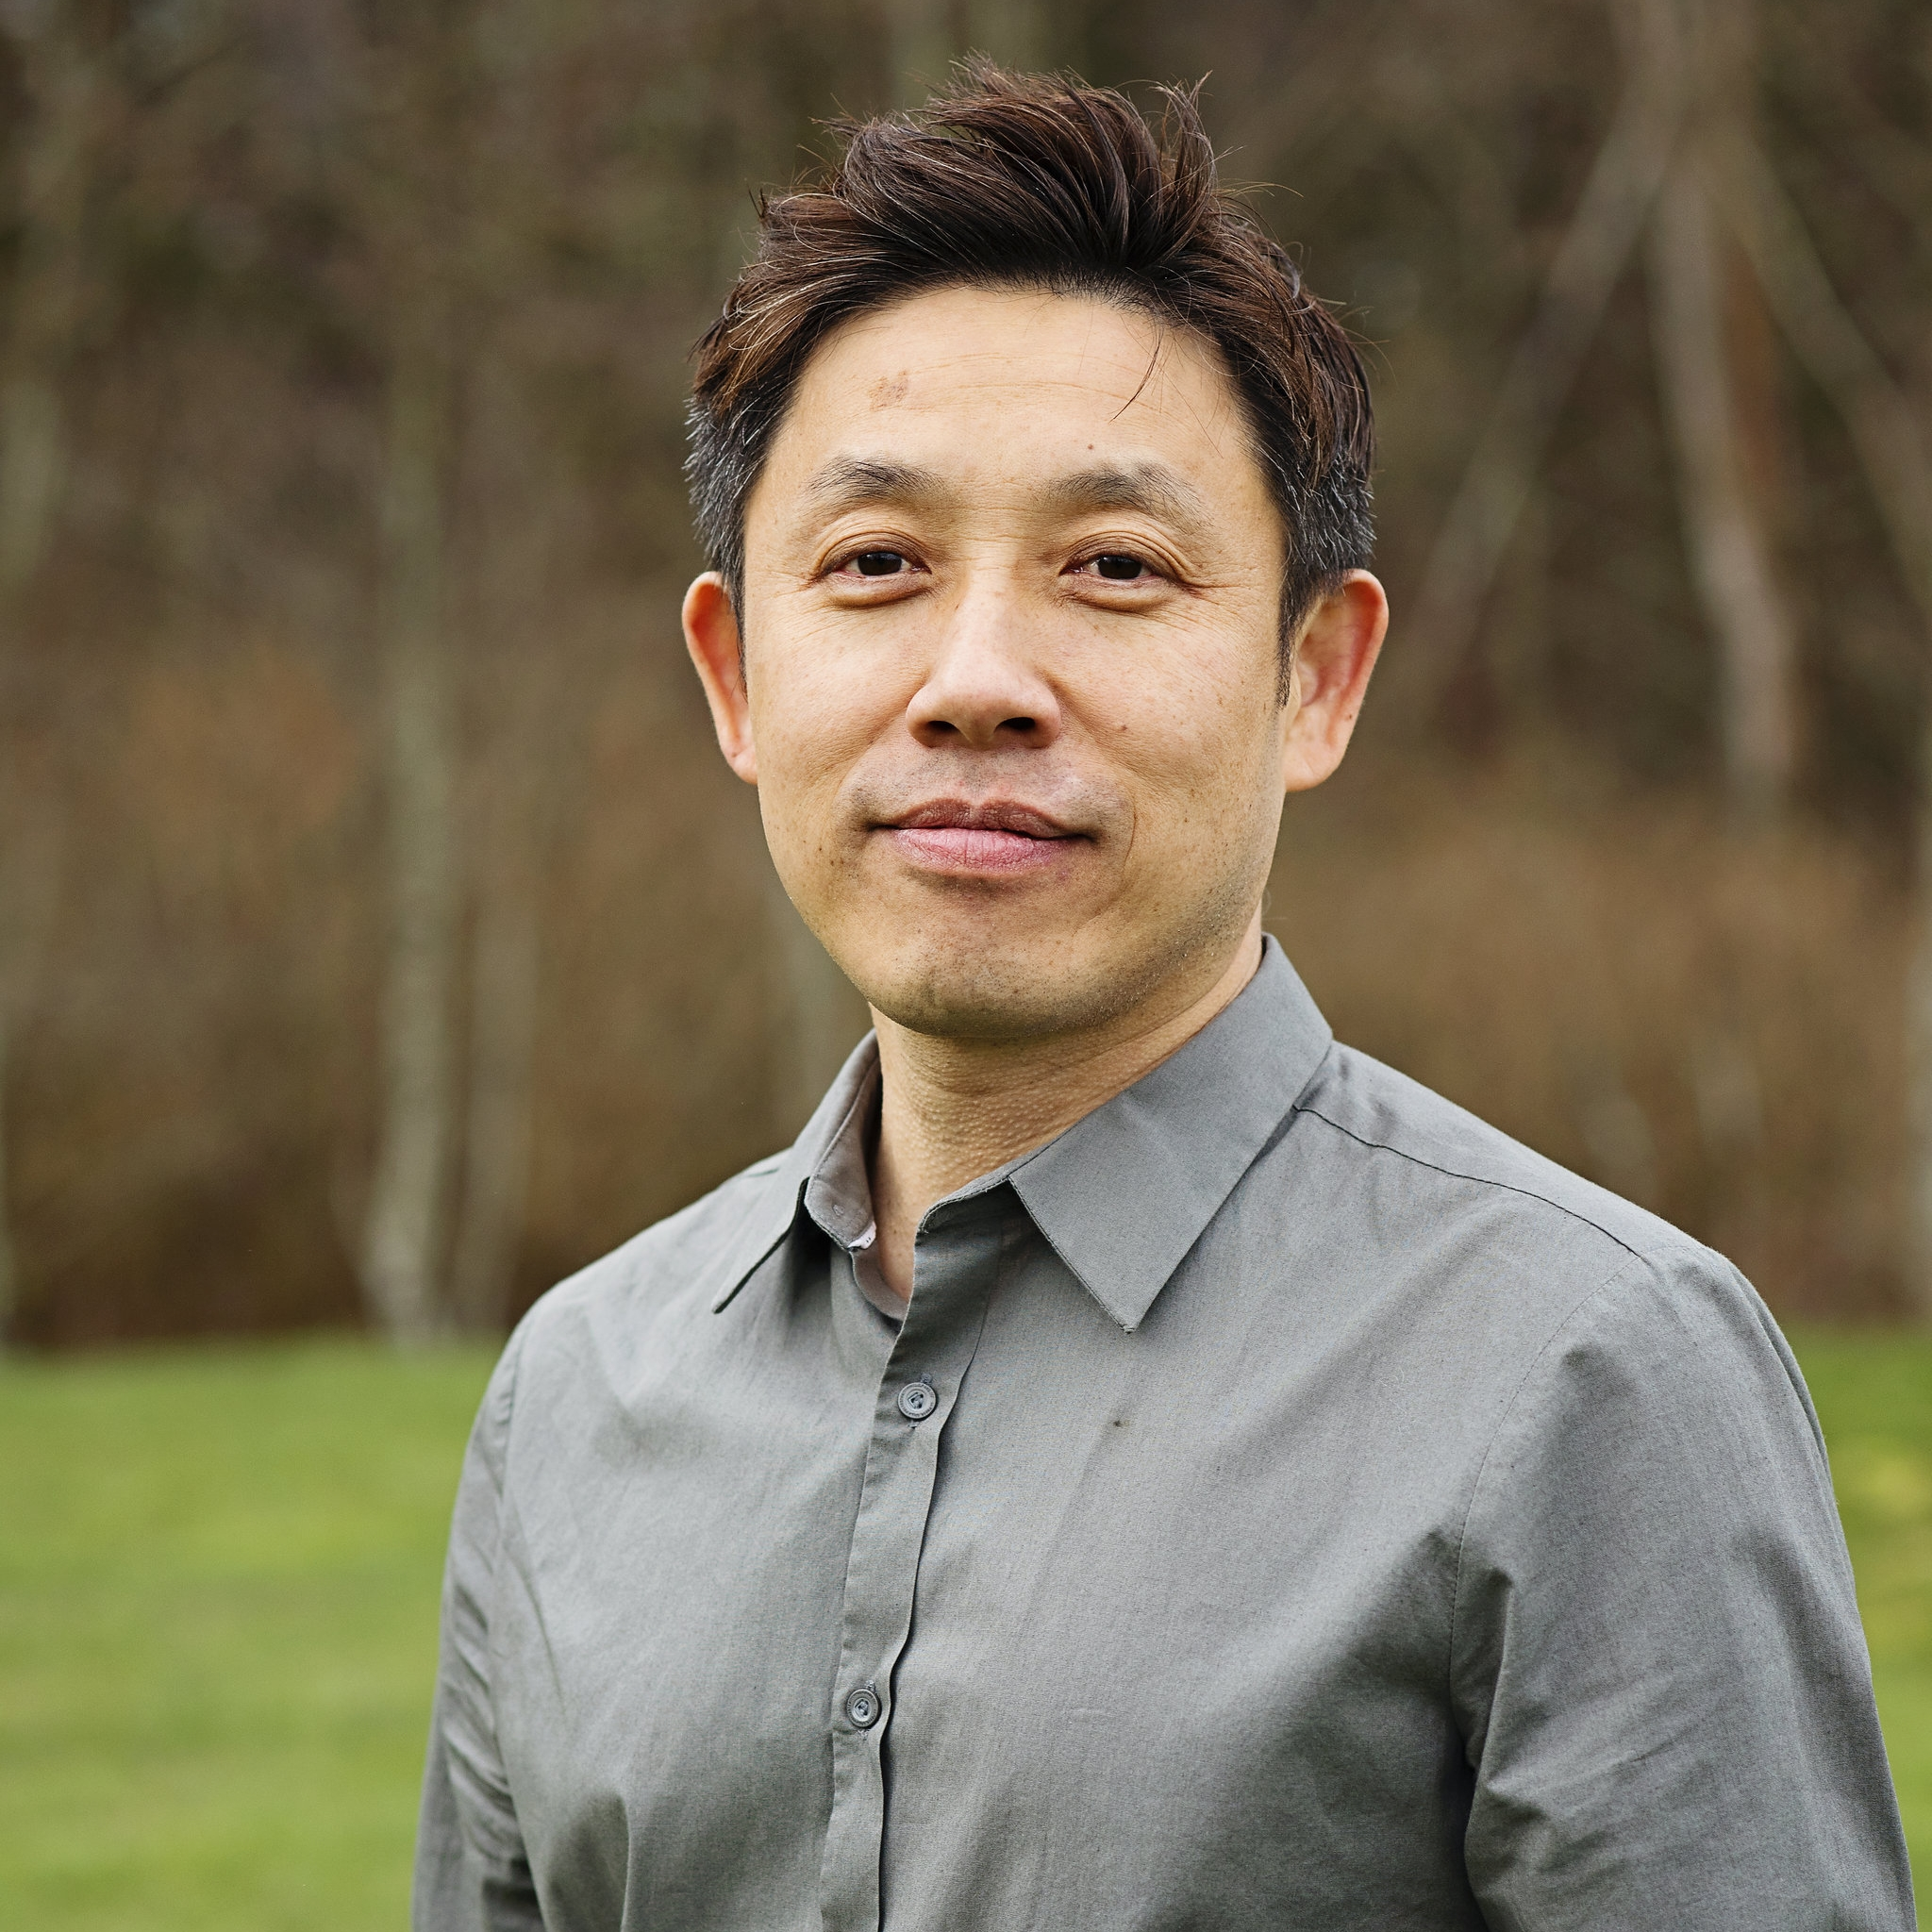 Dr. Joe Kim, DDS - Dr. Joe Kim grew up in Mill Creek, WA, and feels fortunate to serve his hometown with his unique blend of gentle and individualized patient care. He received his undergraduate degree from the University of Washington and earned his Doctor of Dental Surgery degree from Loma Linda University in California.